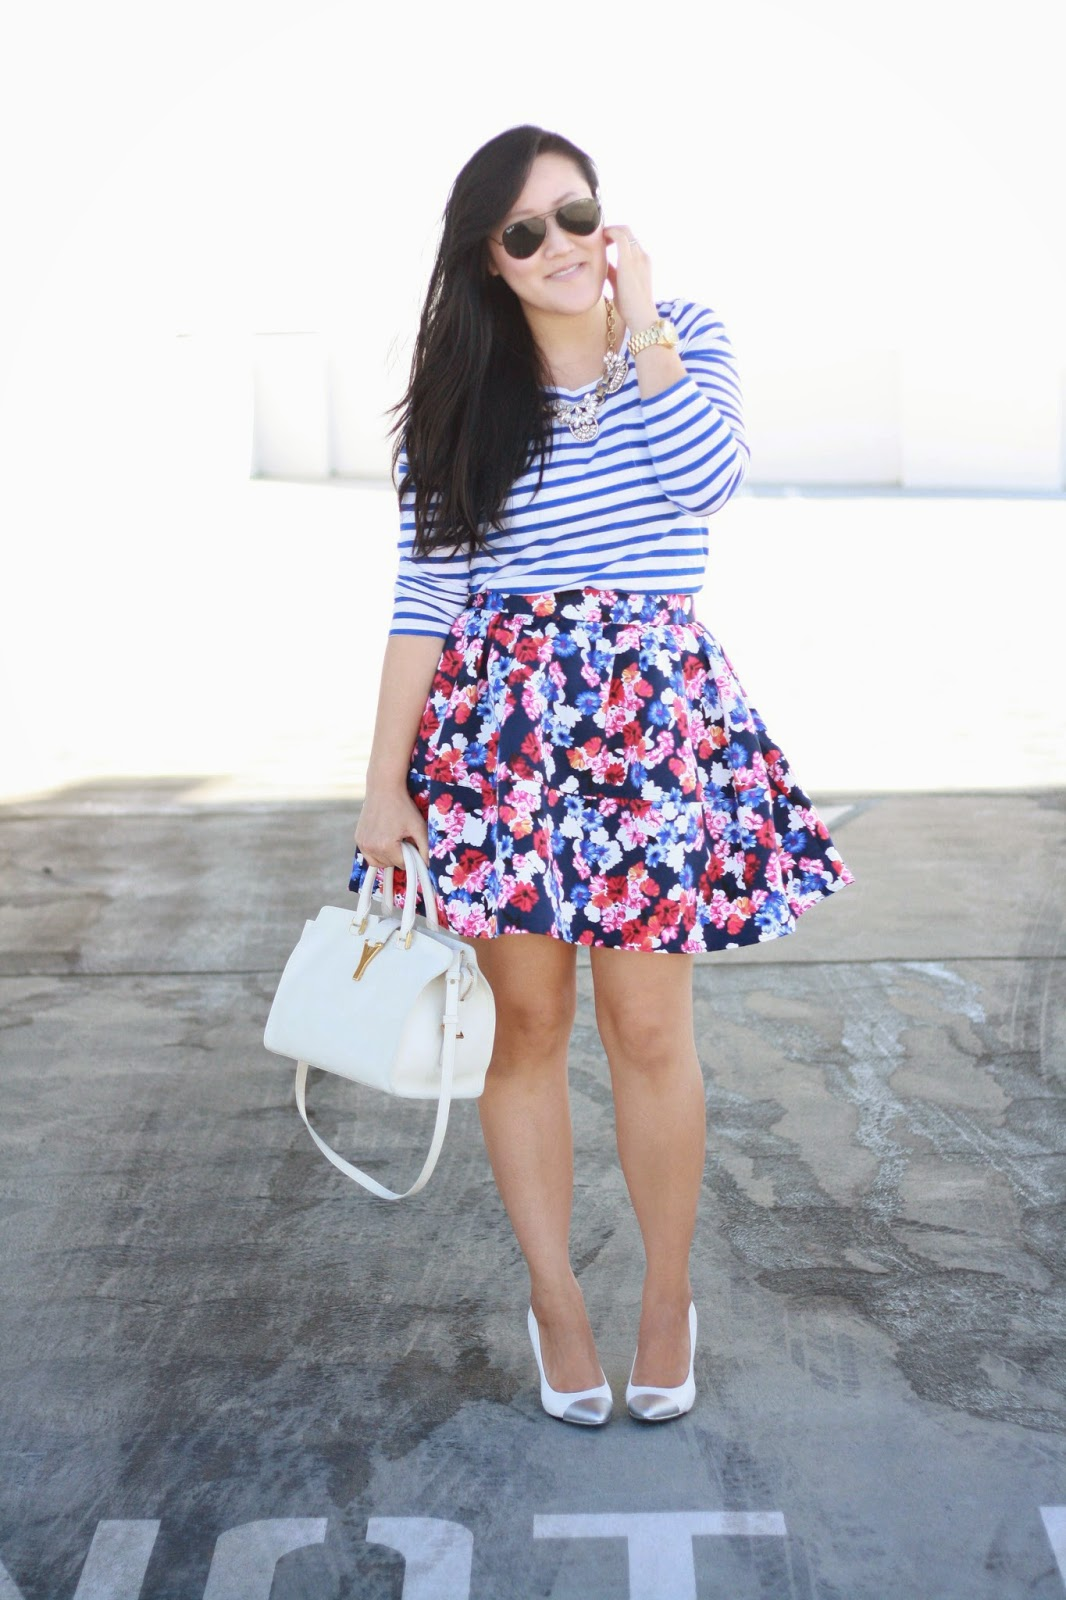 simplyxclassic, jcrew stripe top, express floral skirt, ray ban sunnies, michael kors watch, ysl cabas bag, saint laurent handbag, jcrew necklace, blogger, fashion blogger, southern california